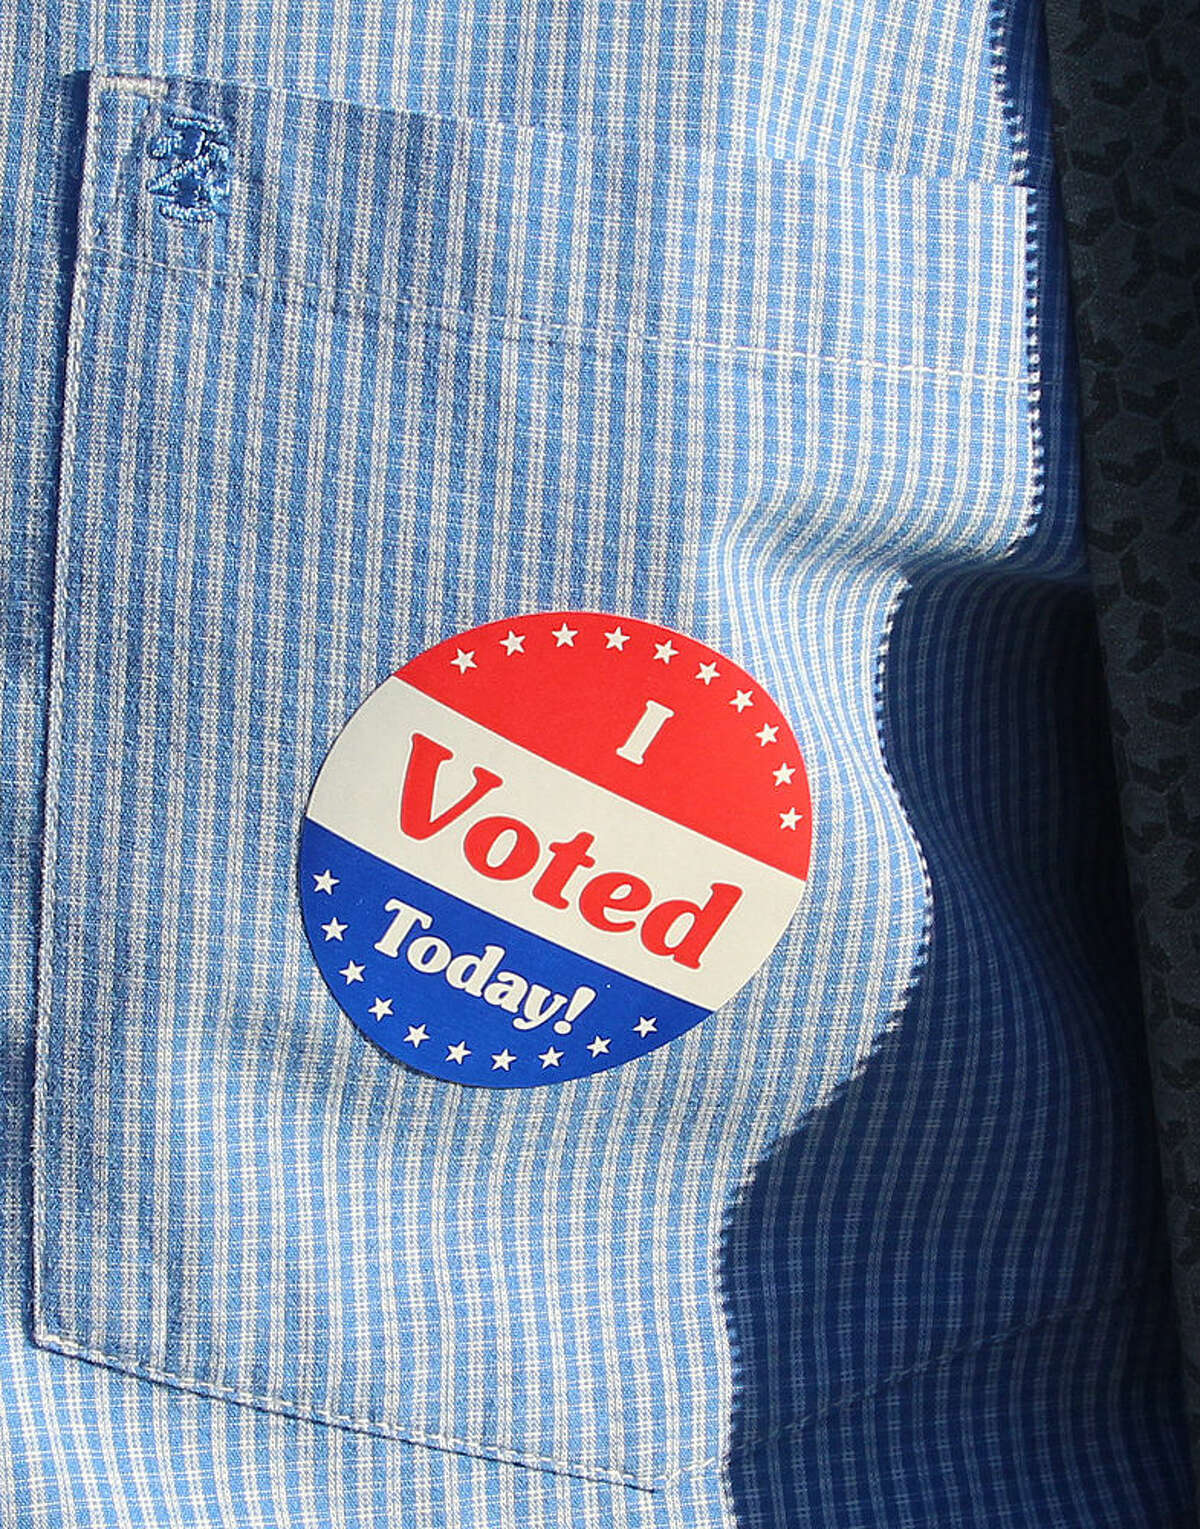 """Hour photo/Chris Bosak A voter displays his """"I Voted Today"""" sticker after voting Tuesday morning at St. Mary's on West Avenue in Norwalk."""